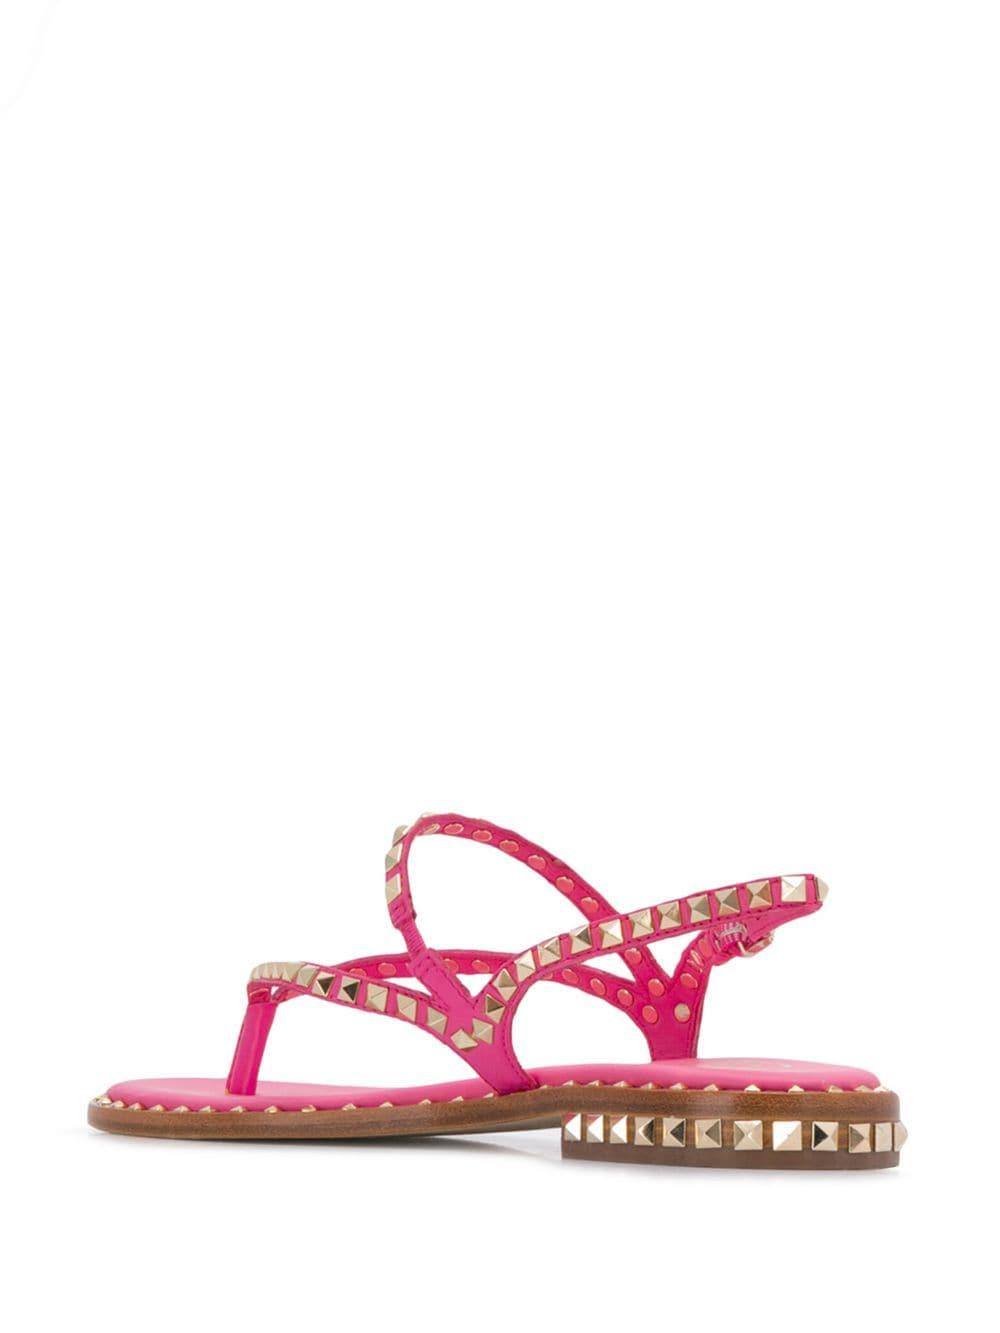 84df29b37 Ash - Pink Peps Studded Strappy Sandals - Lyst. View fullscreen